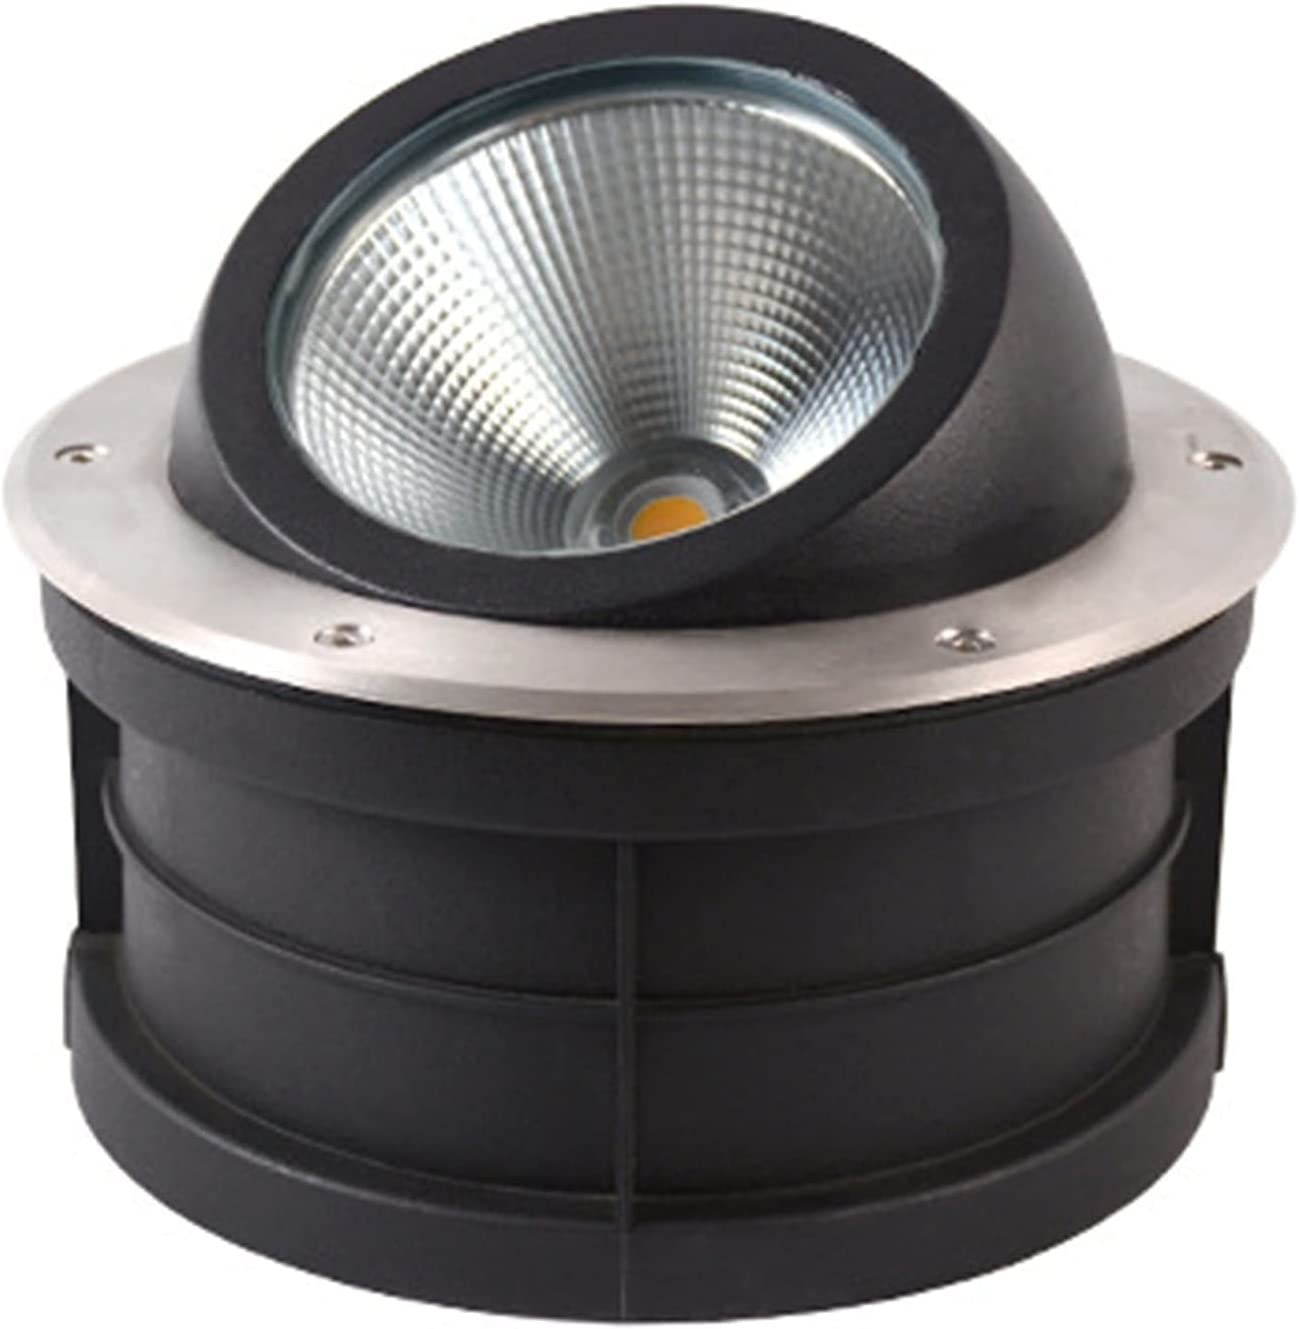 AWSAD Inground Led Excellence Lights Outdoor Super Waterproof Shipping included R IP65 Bright